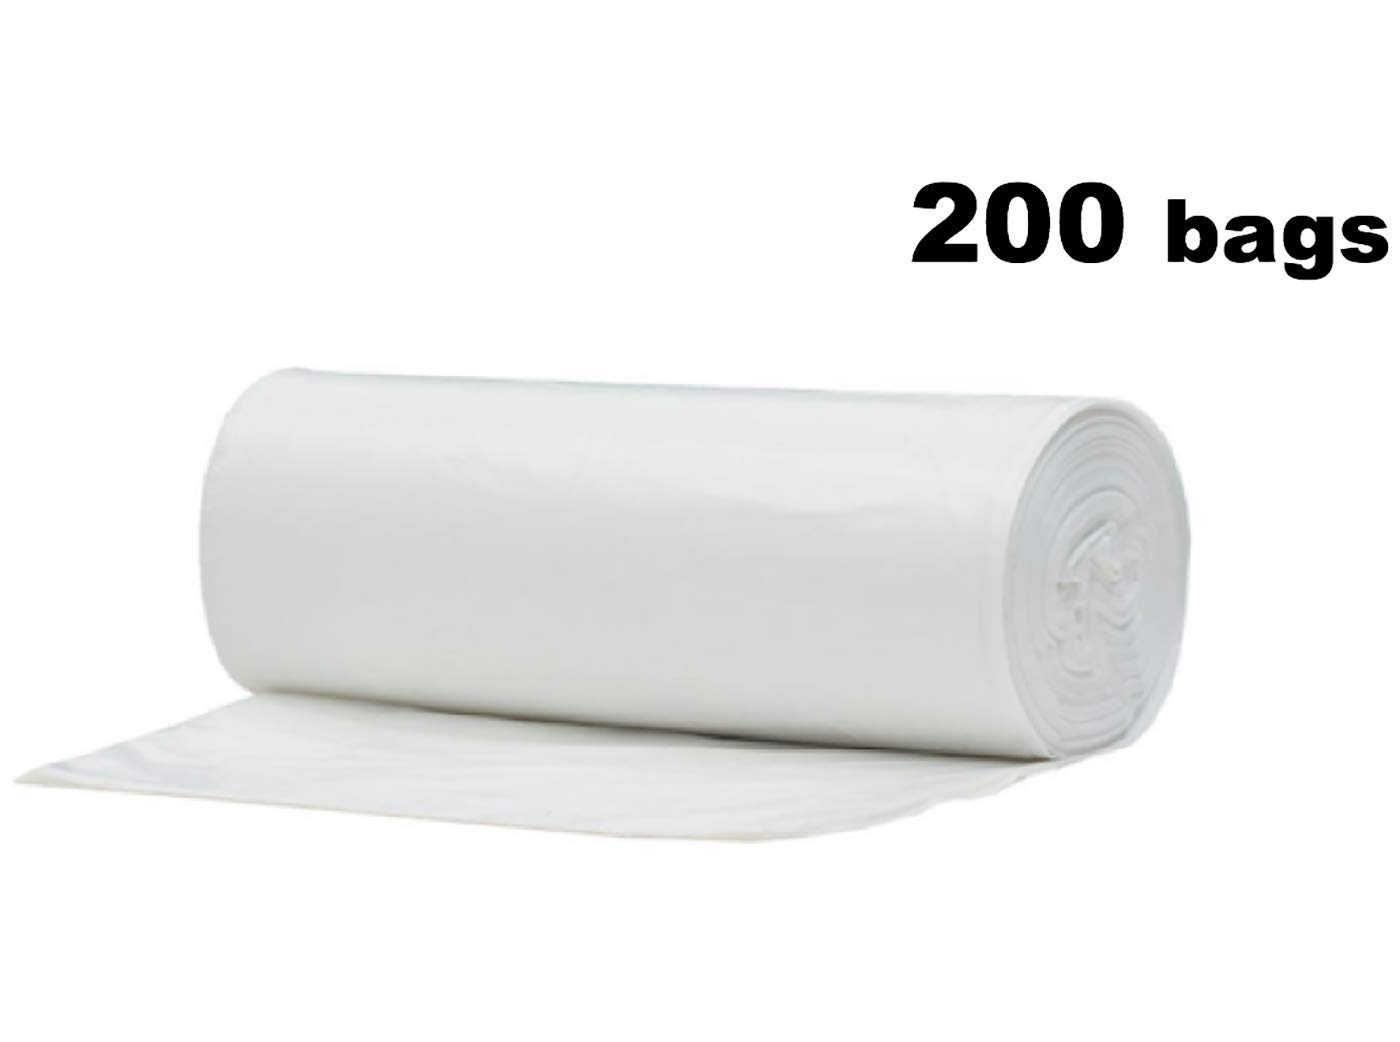 2.6 Gallon Clear Small Garbage Trash Bags 200 Count